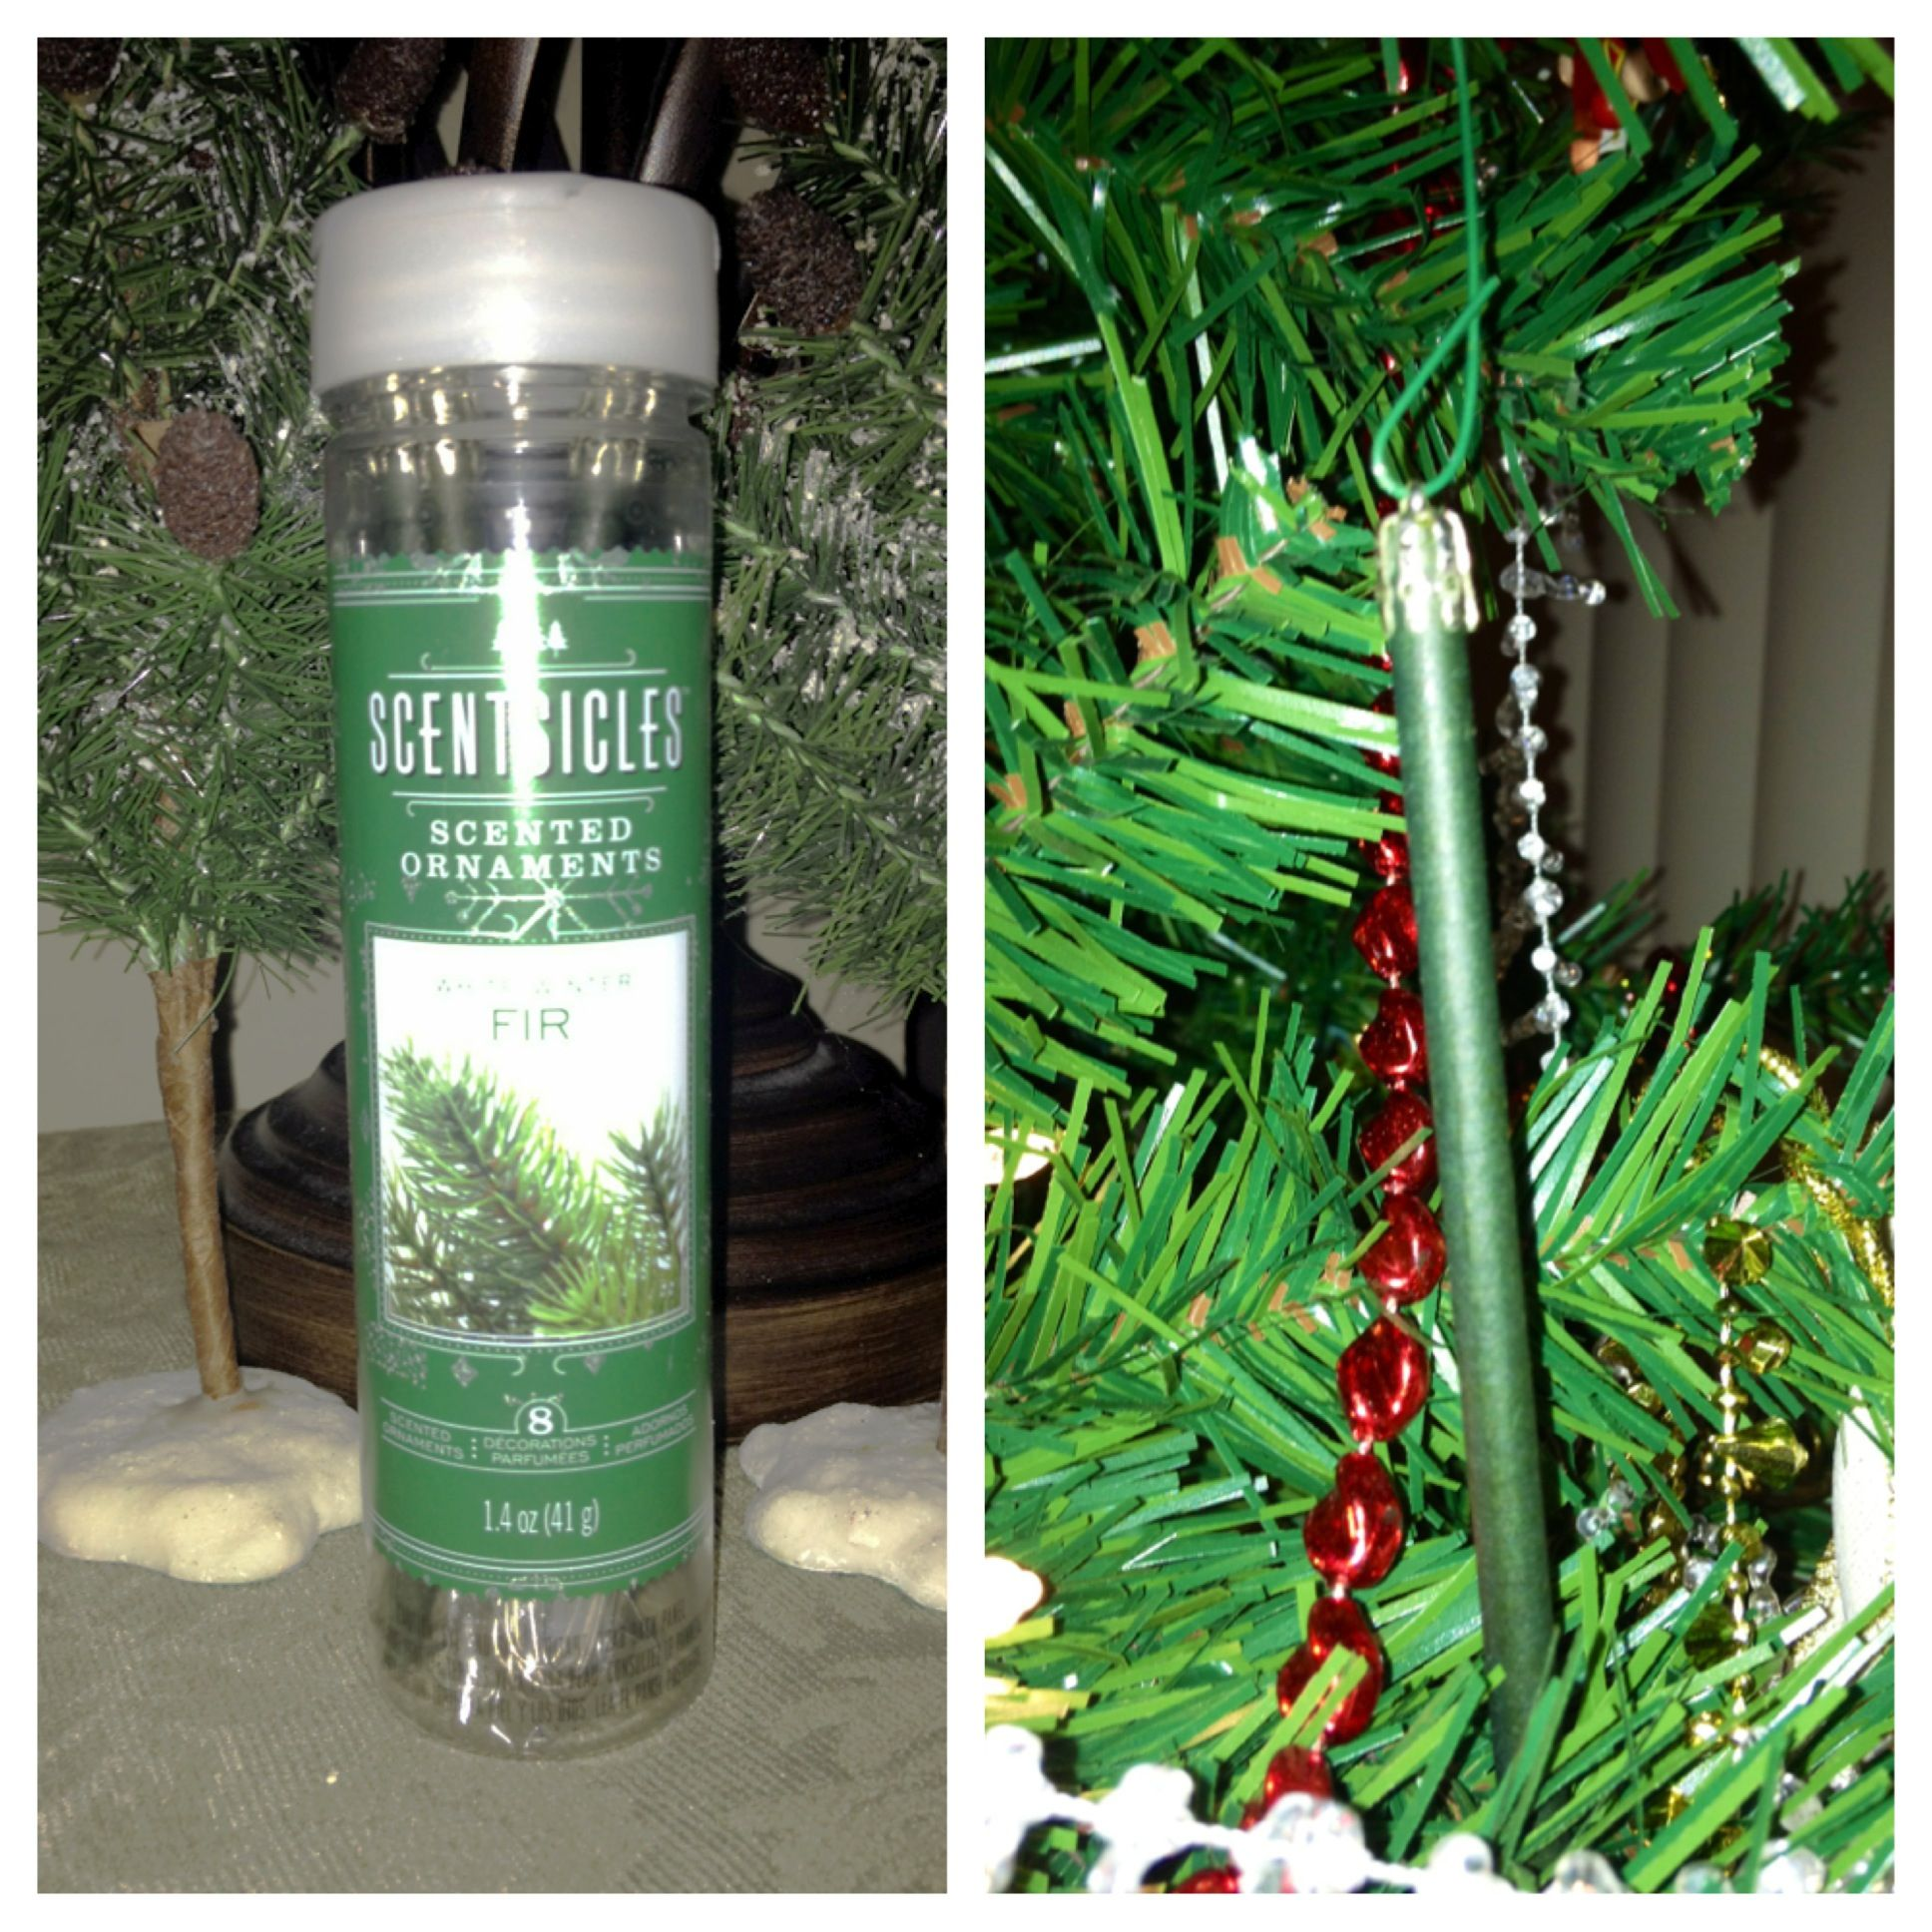 scented ornament sticks for fake christmas trees gives them a real christmas tree scent